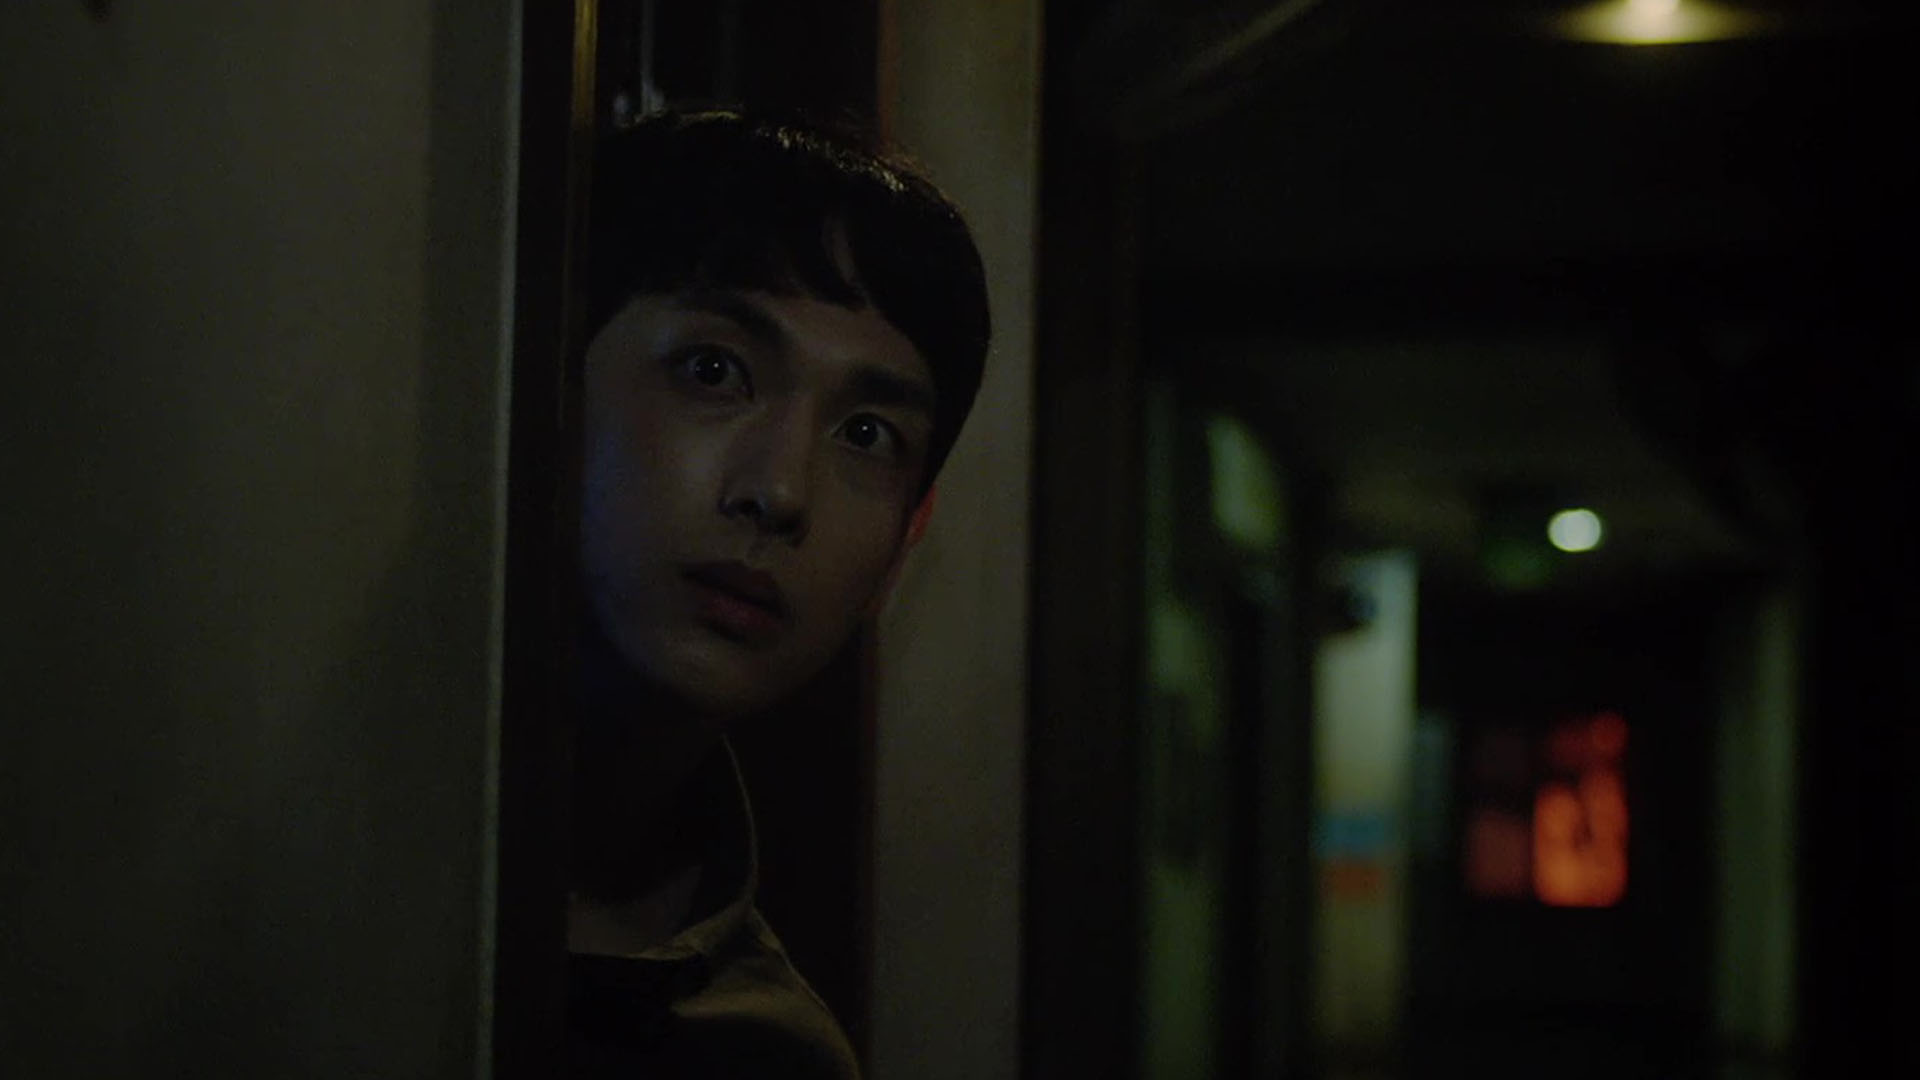 """Good Ol' Review: Im Siwan and Lee Dong Wook Deliver Masterful Performances in OCN's Stunning Psychological Thriller """"Strangers from Hell"""""""